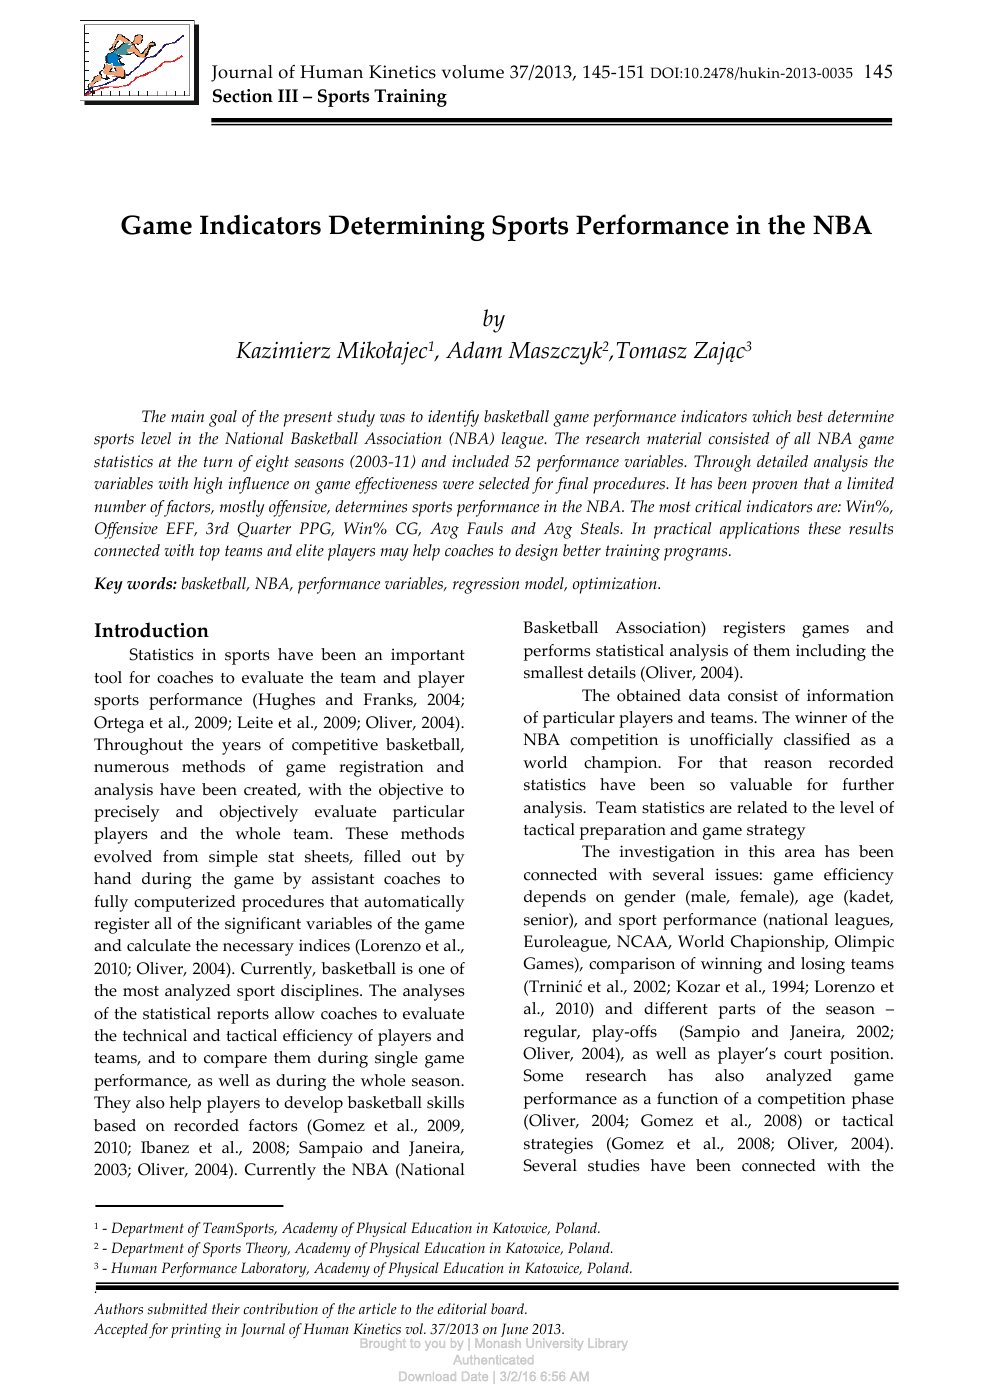 research paper topics on the nba